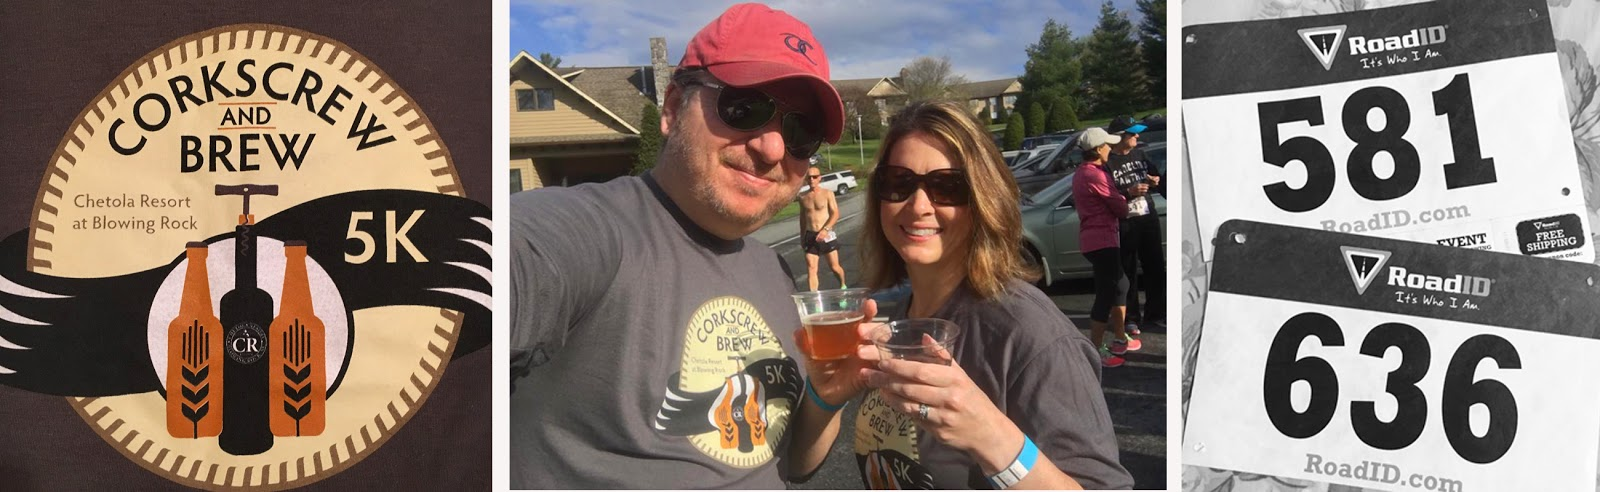 Drinking wine and beer at 9 a.m. while jogging a 5K in the mountains ... it was a bucket list.